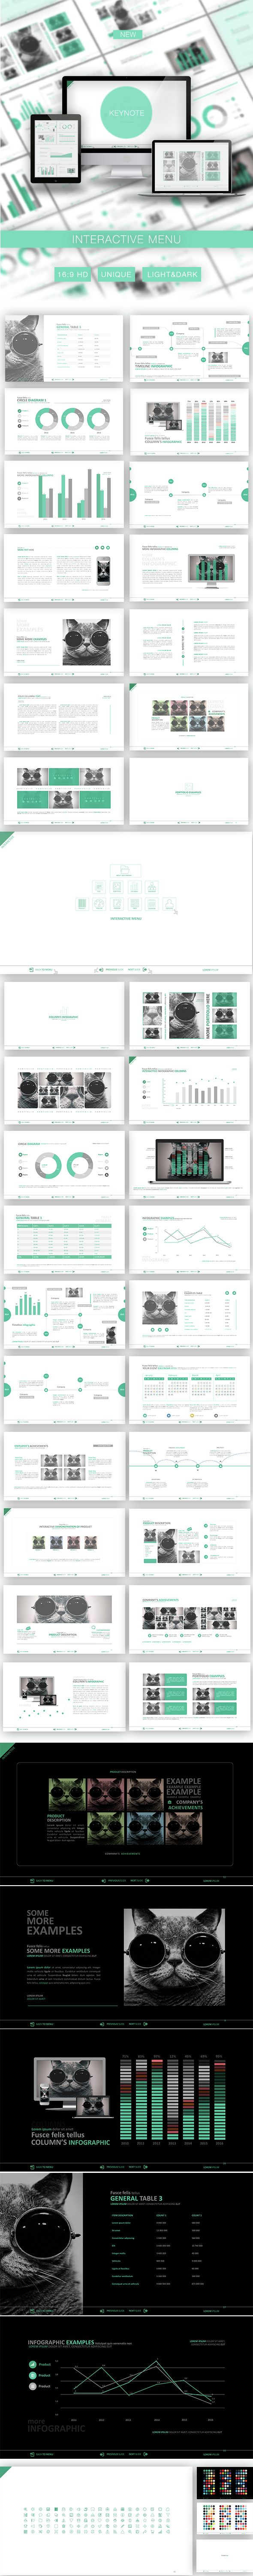 Keynote Presentation Template. Download here: http://graphicriver.net/item/keynote/14885635?ref=ksioks